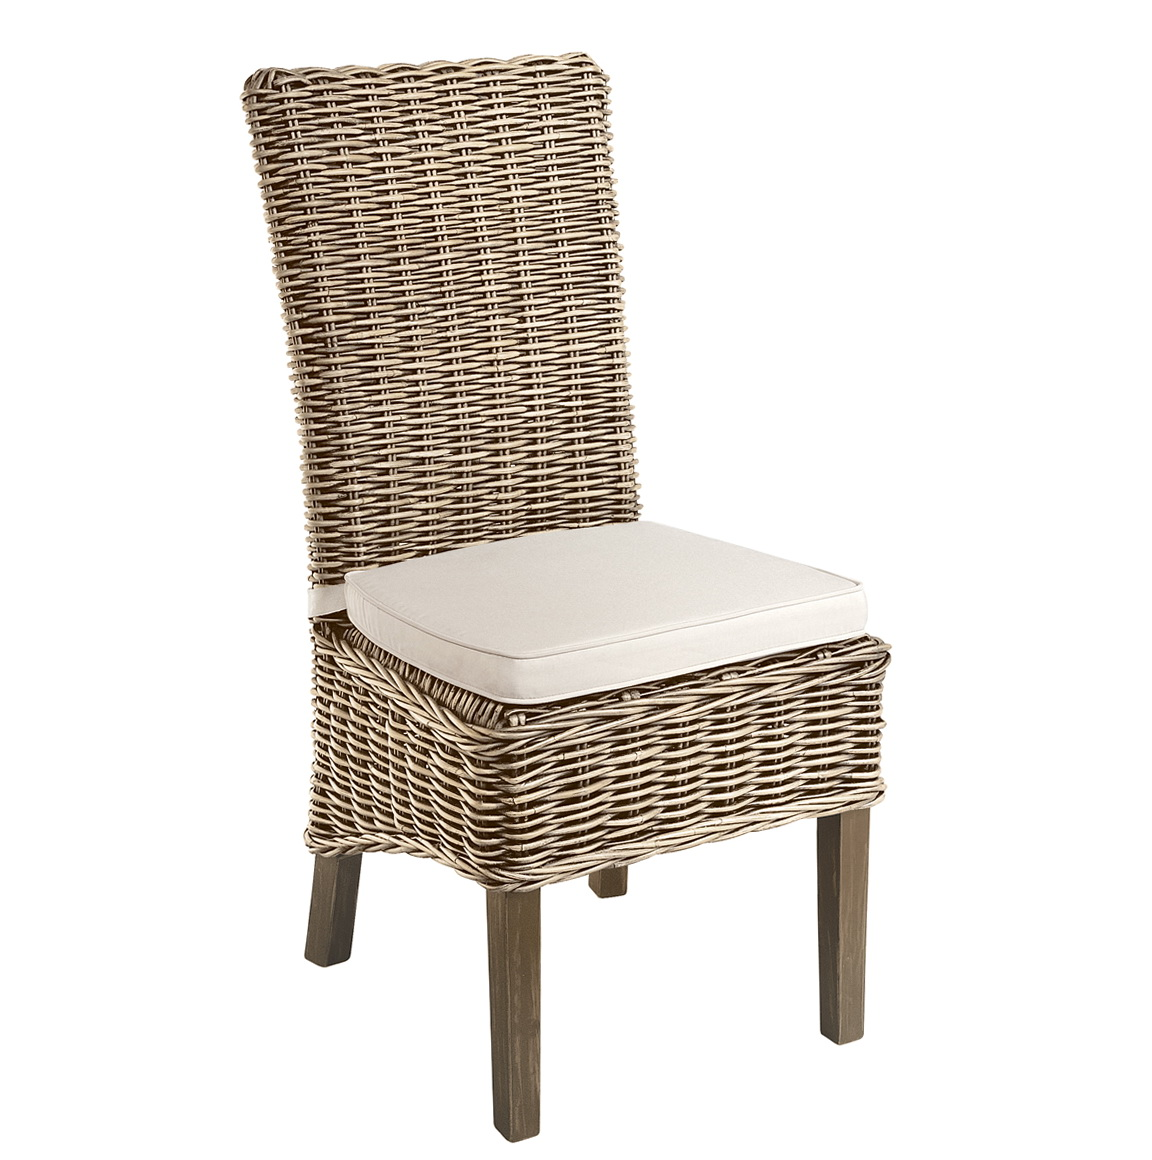 wicker chairs for sale bedroom chair with ottoman furniture cushions on home design ideas